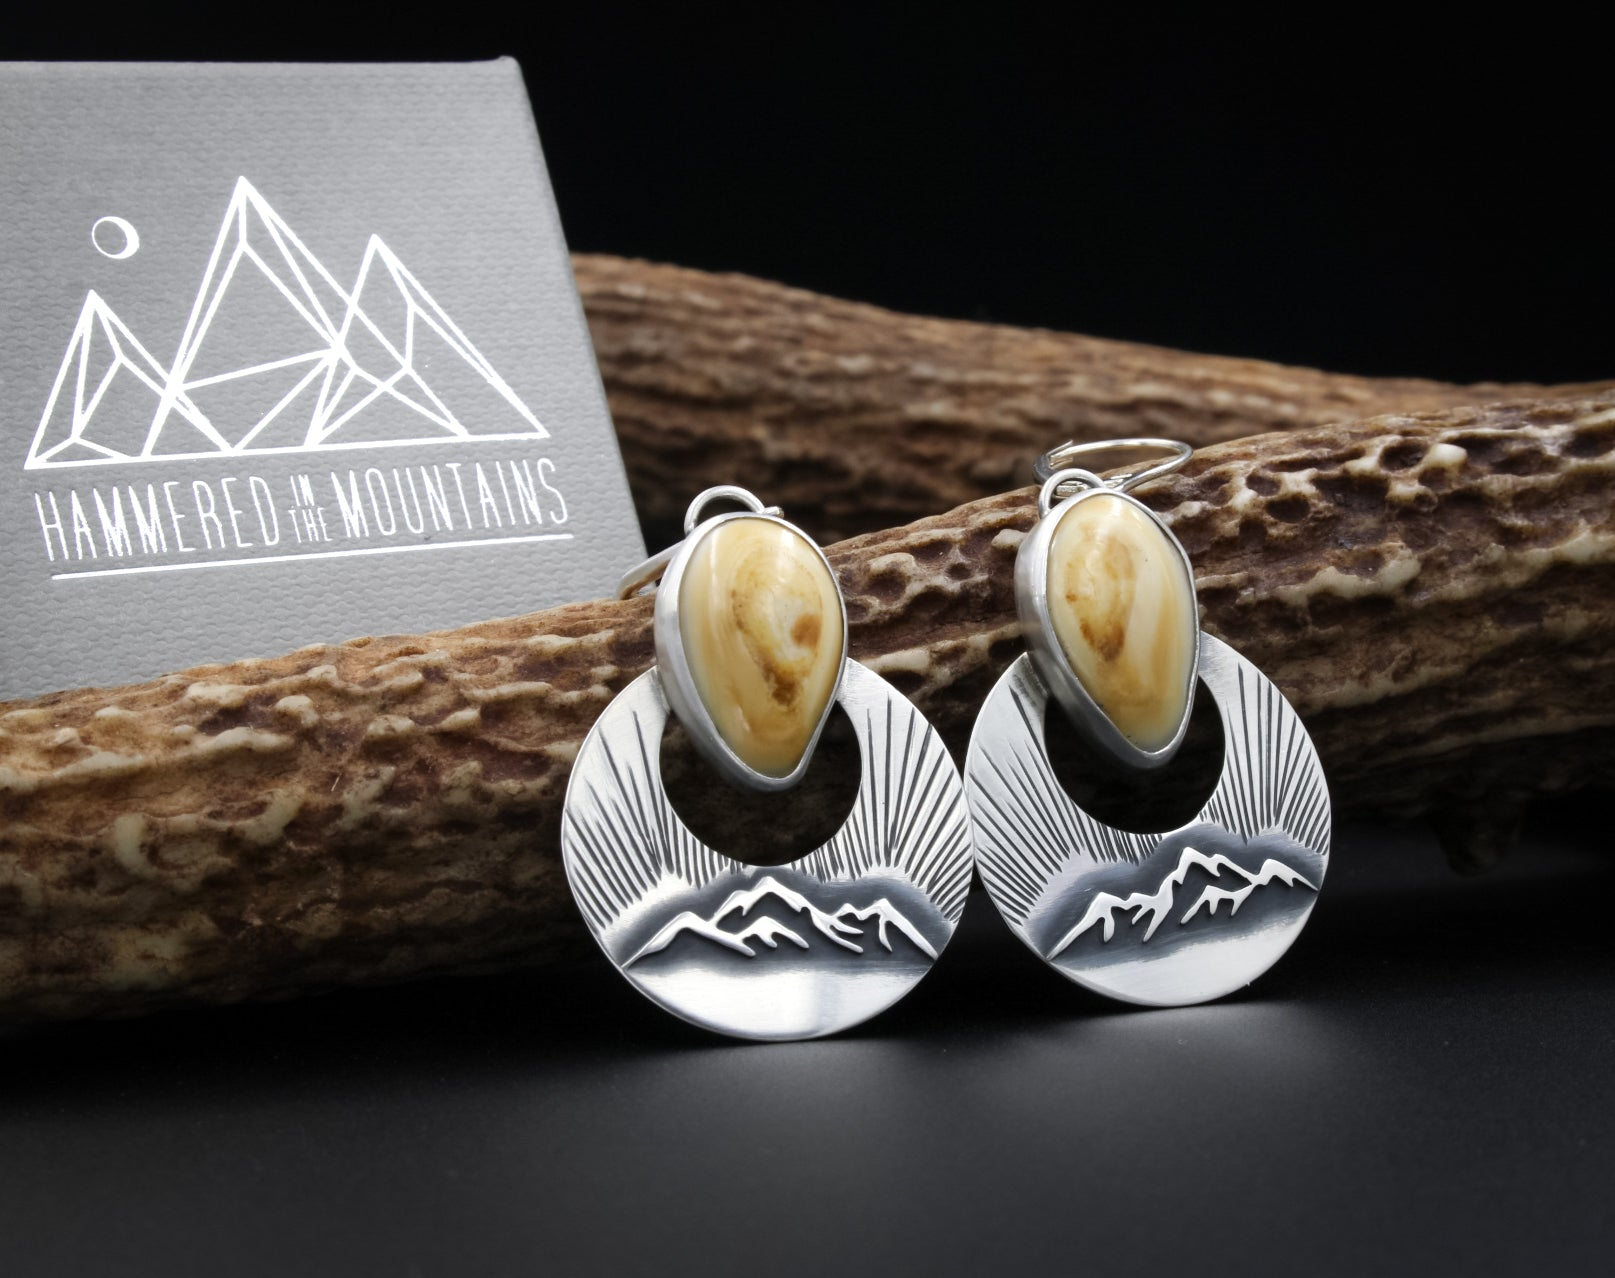 Elk Ivory Jewelry, Elk Ivory Earrings, Custom Elk Ivory